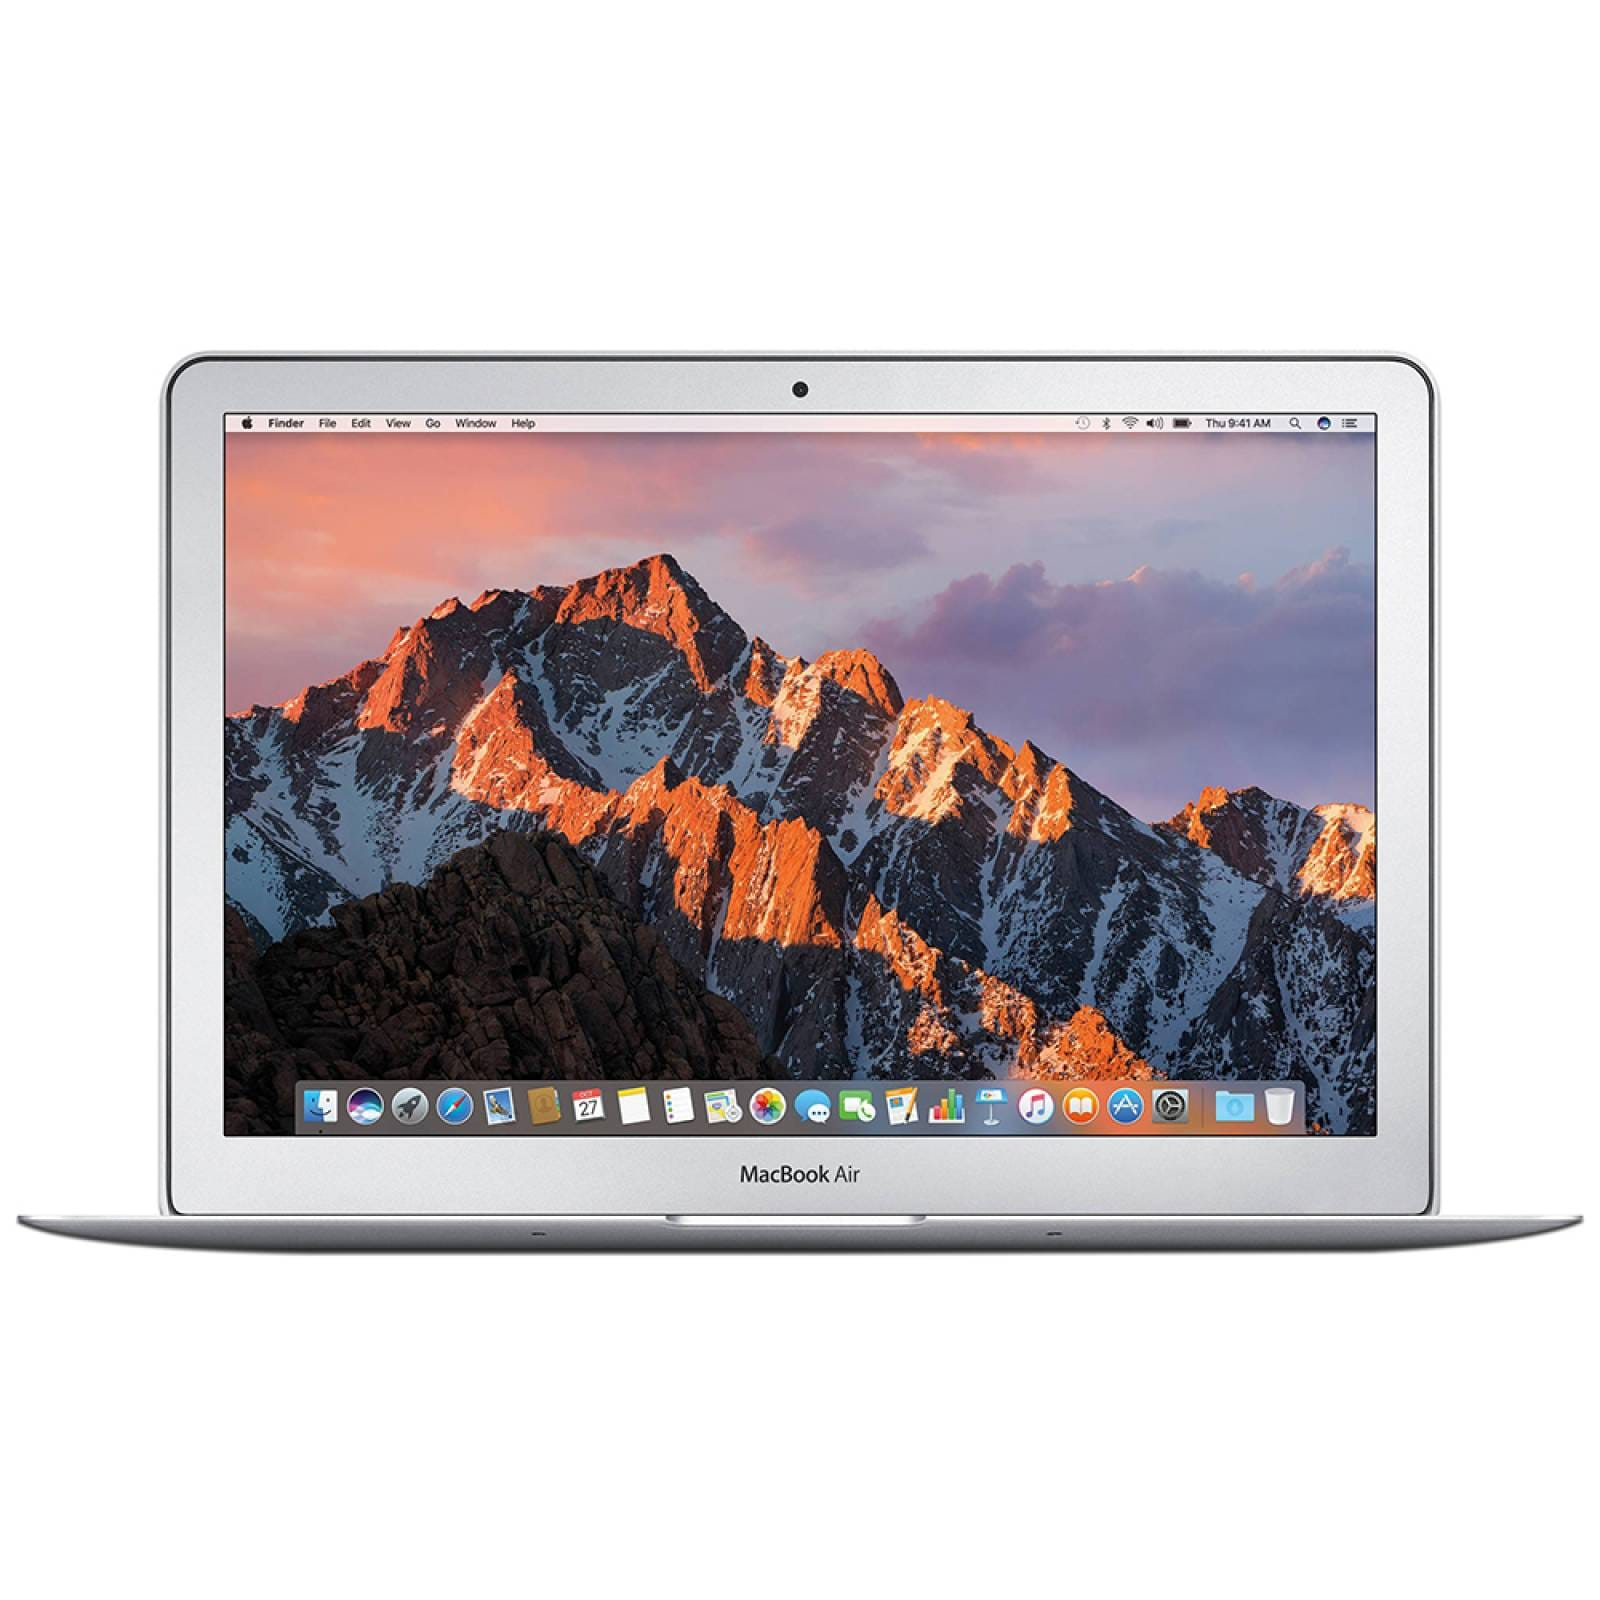 Apple Macbook Air 13 MQD32E A Procesador Intel Core i5 Memoria de 8GB LPDDR3 SSD de 128GB Pantalla de 13 pulgadas LED Video Intel HD Graphics 600 S O macOS Sierra